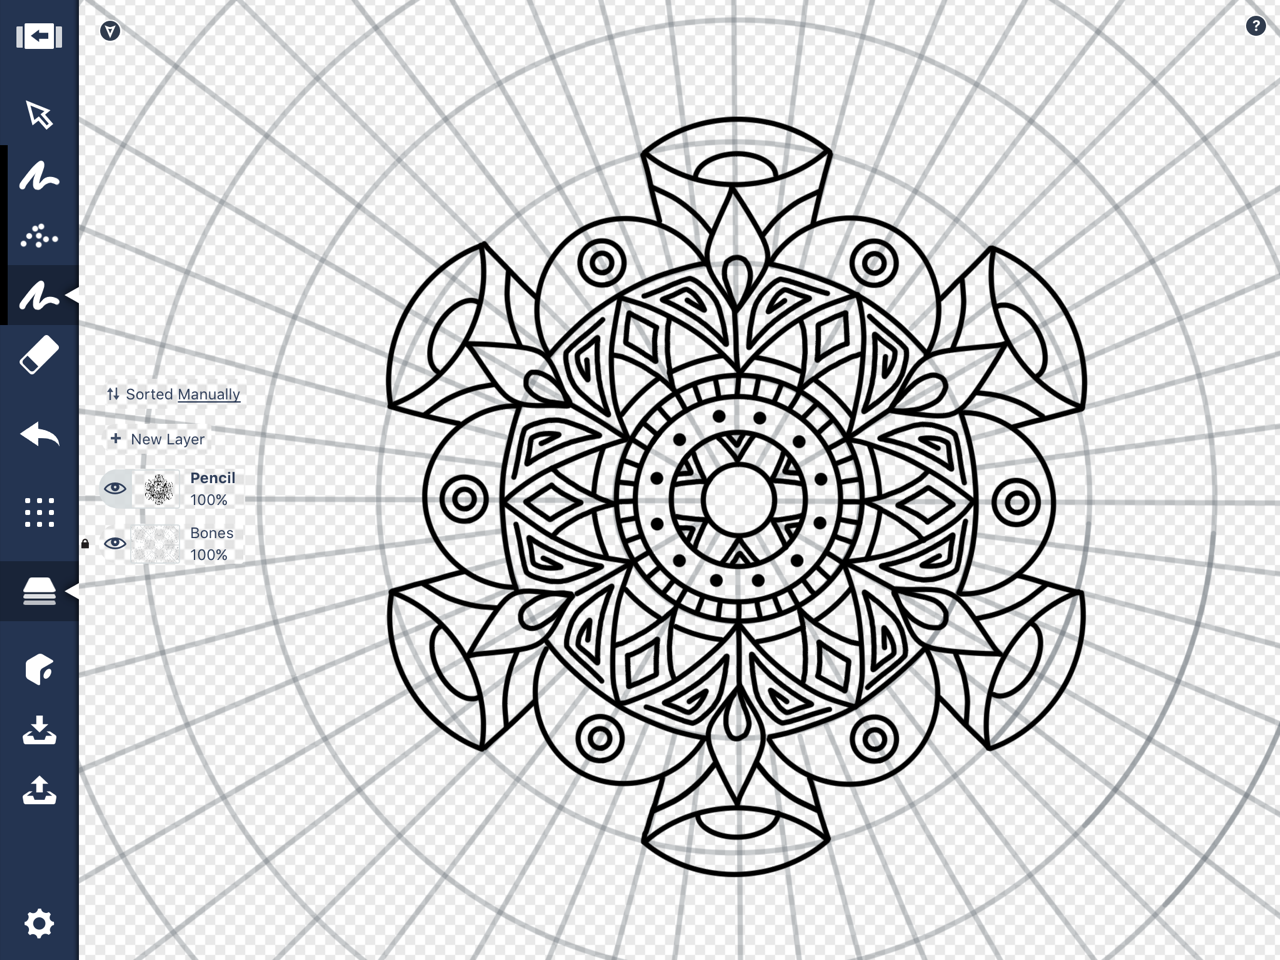 How To Draw A Mandala In Concepts Concepts App Medium